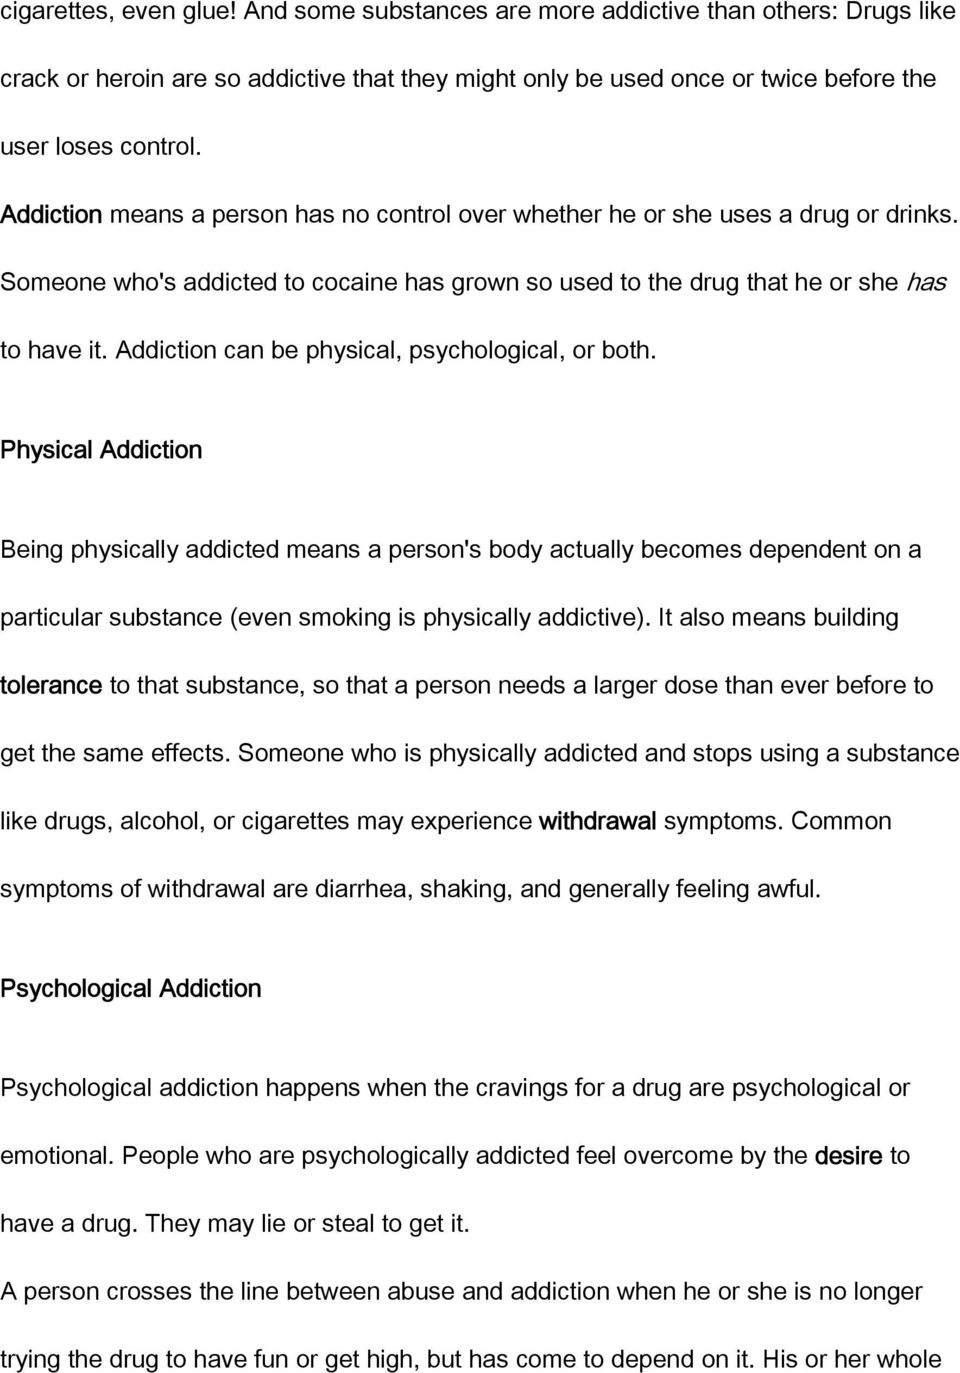 Addiction can be physical, psychological, or both.